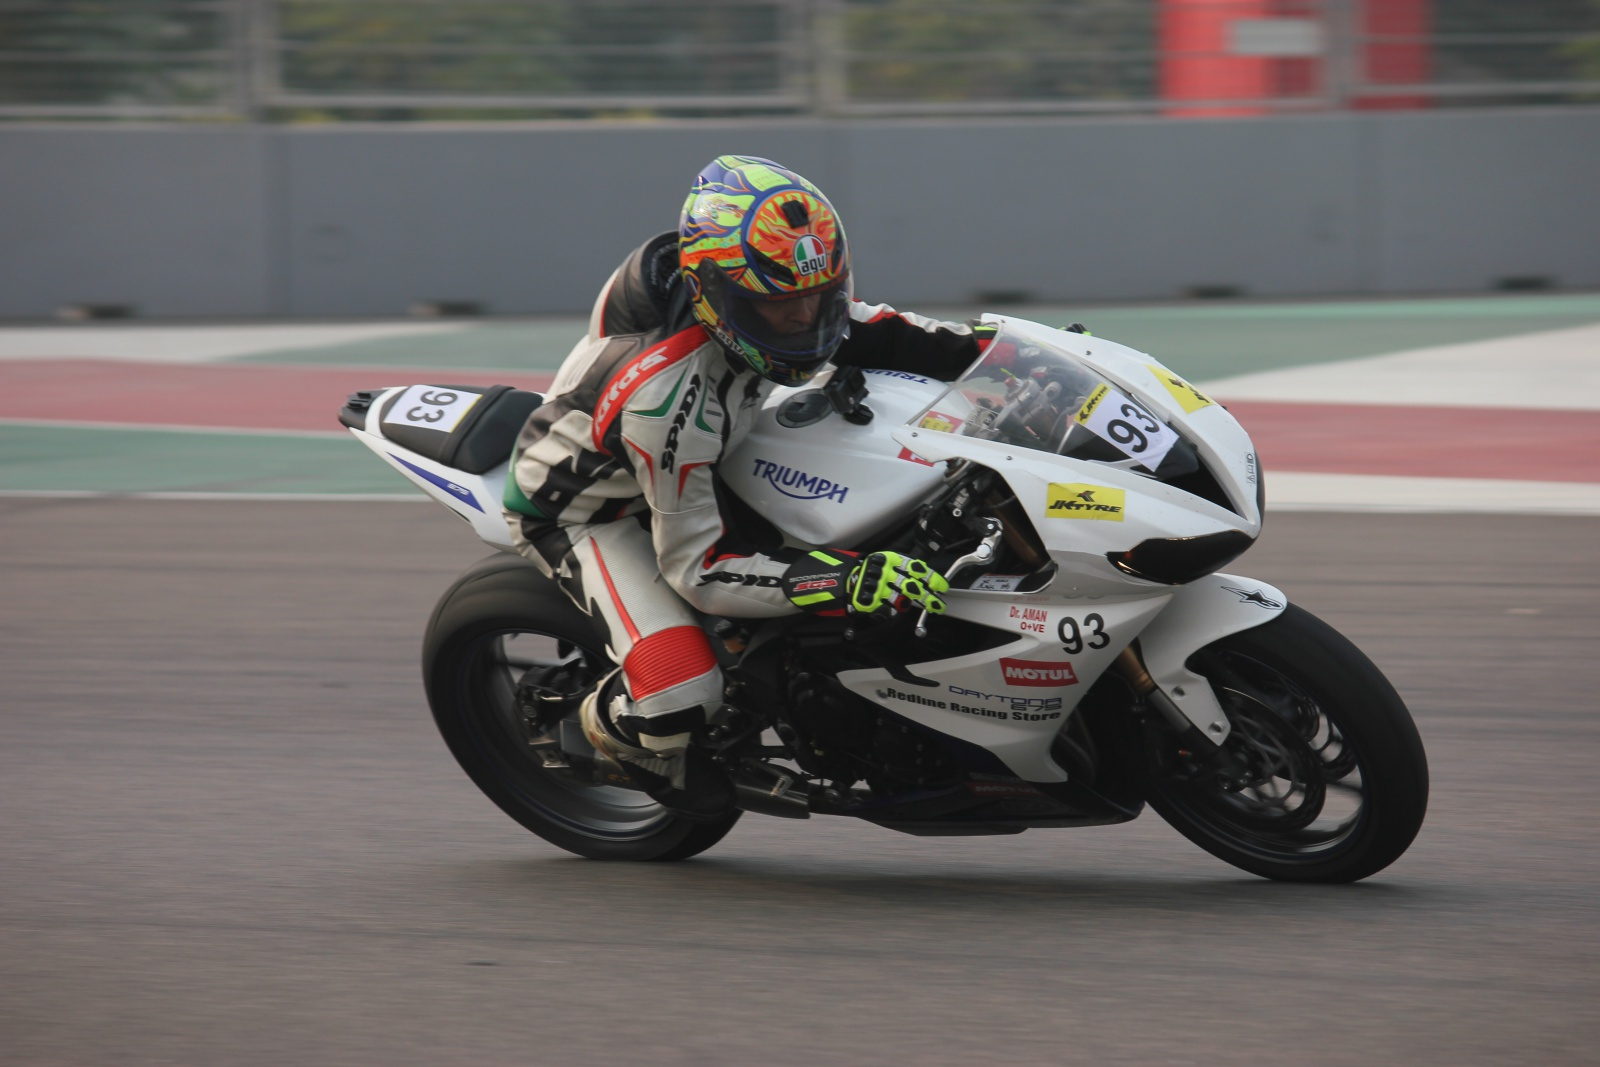 Triumph wins the 1st, 2nd & 3rd position in 600cc category of JK Tyre Racing Championship 2015